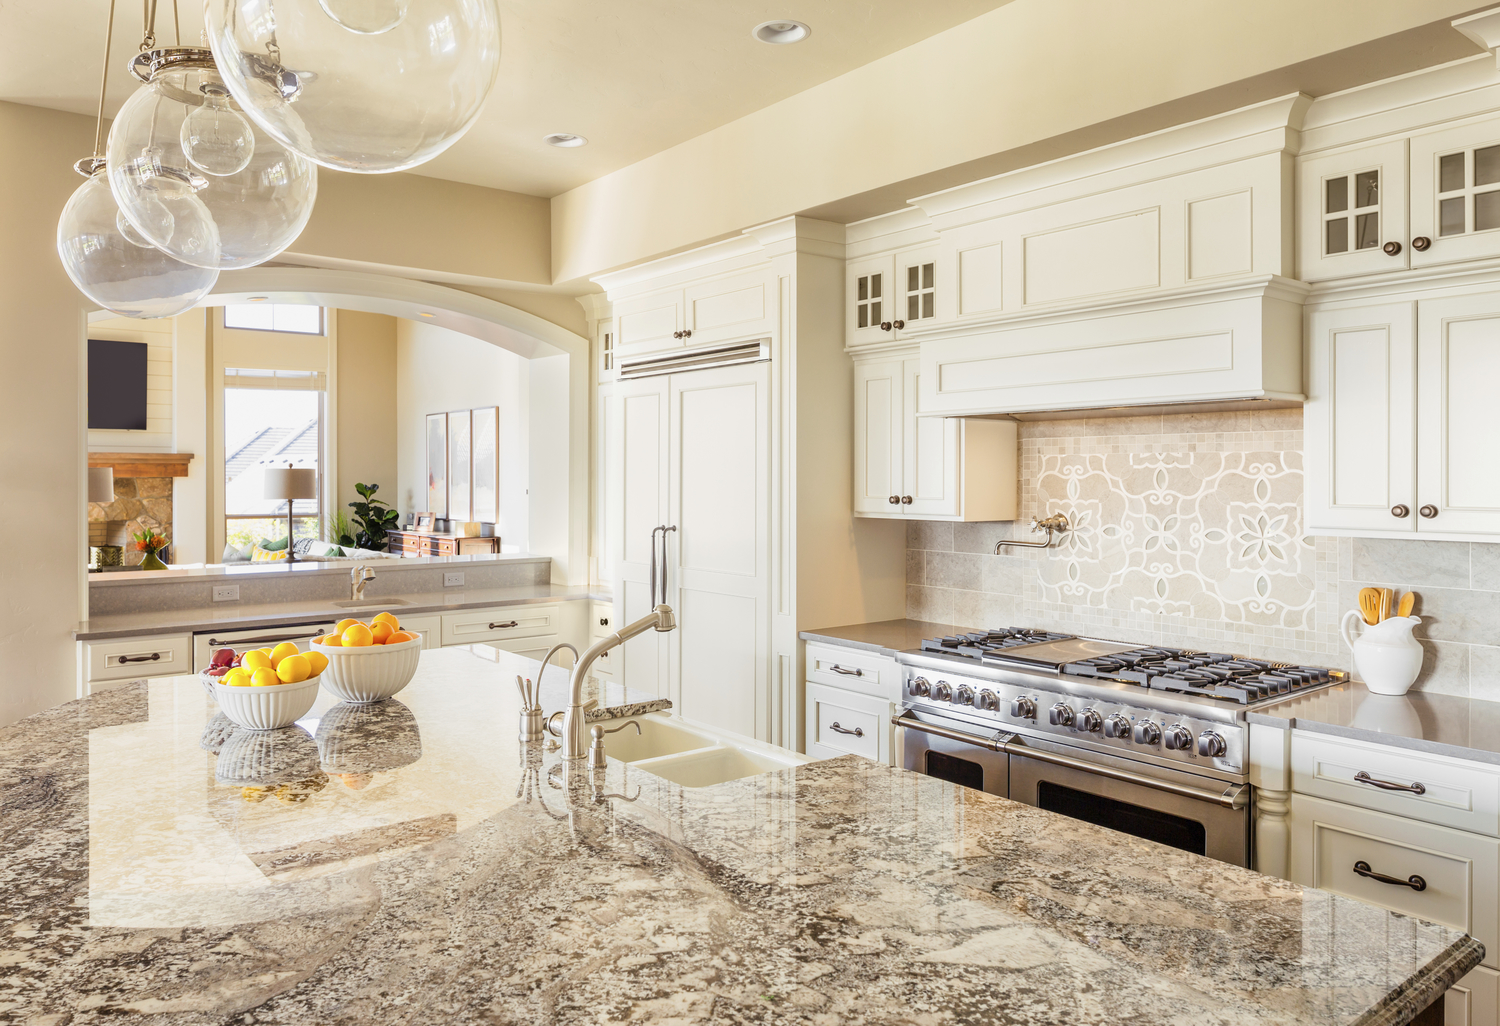 Stein Design Kitchen & Bathroom Remodeling, West County St Louis